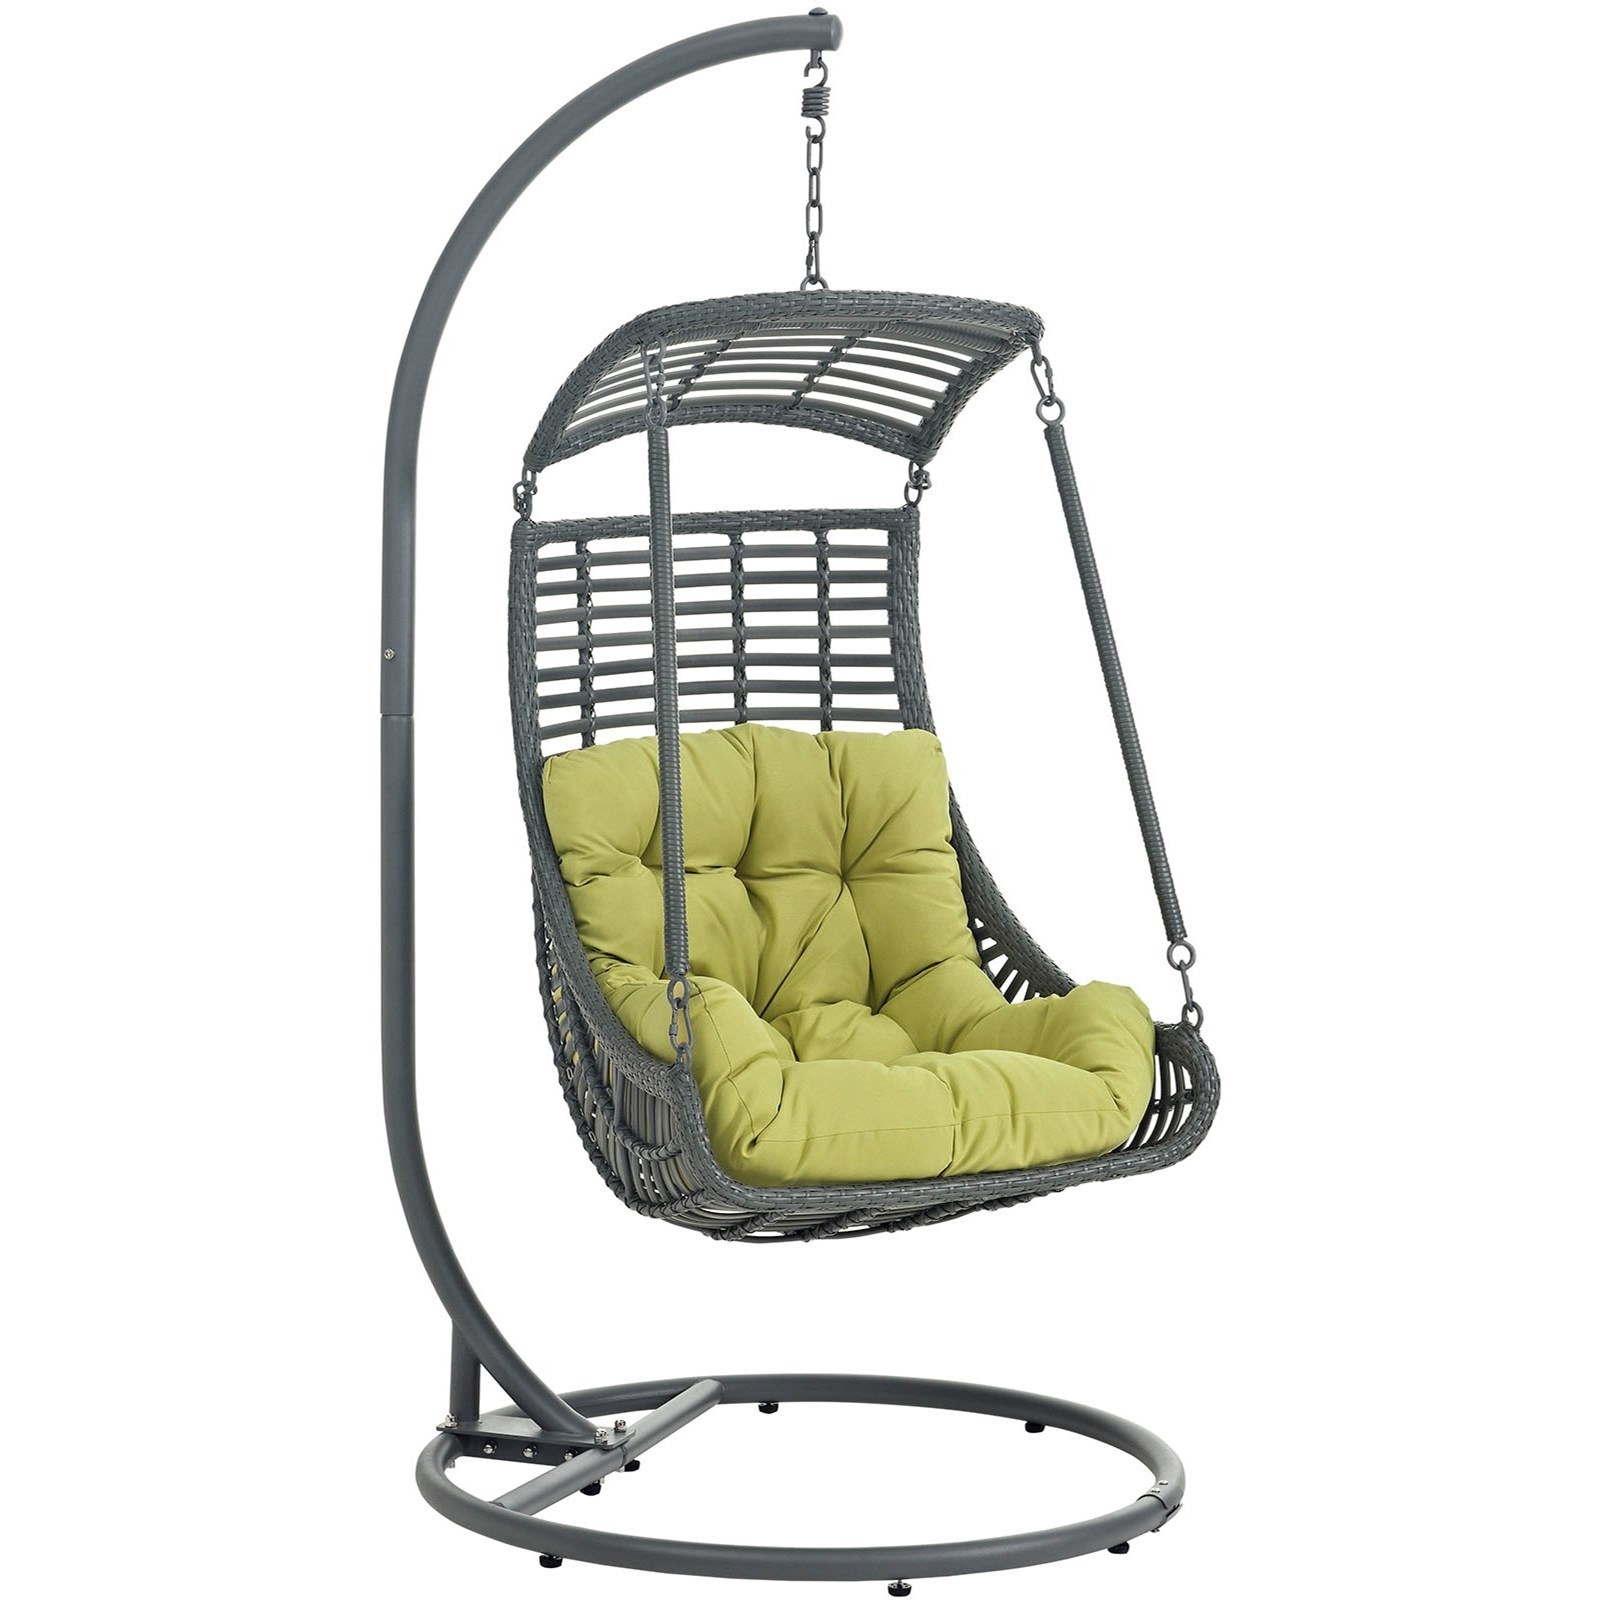 Swinging Chair Jungle Outdoor Patio Swing Chair With Stand By Modway At Value City Furniture